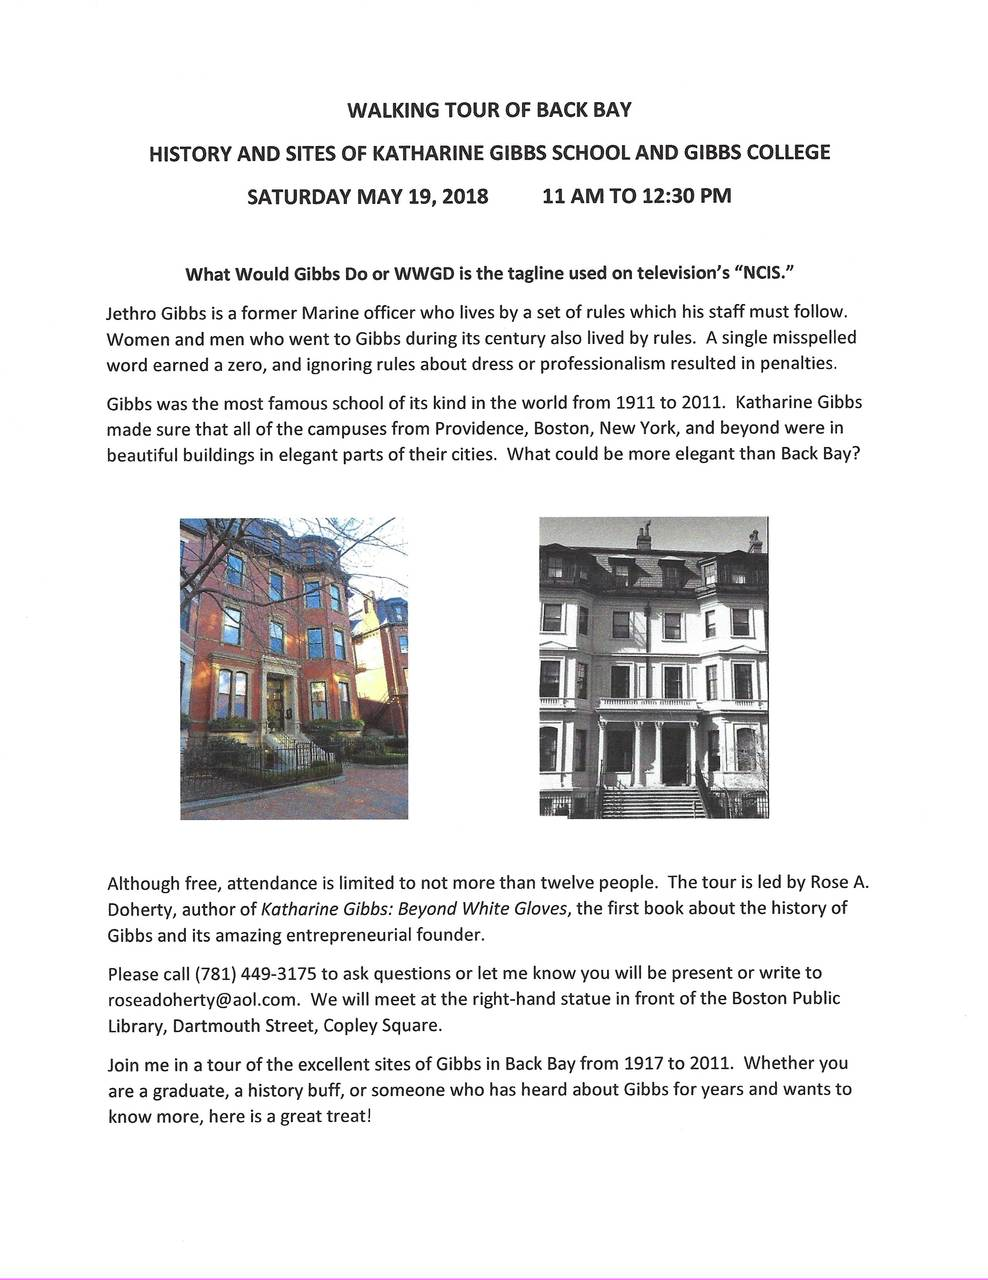 Walking Tour of Back Bay: History and Sites of Katharine